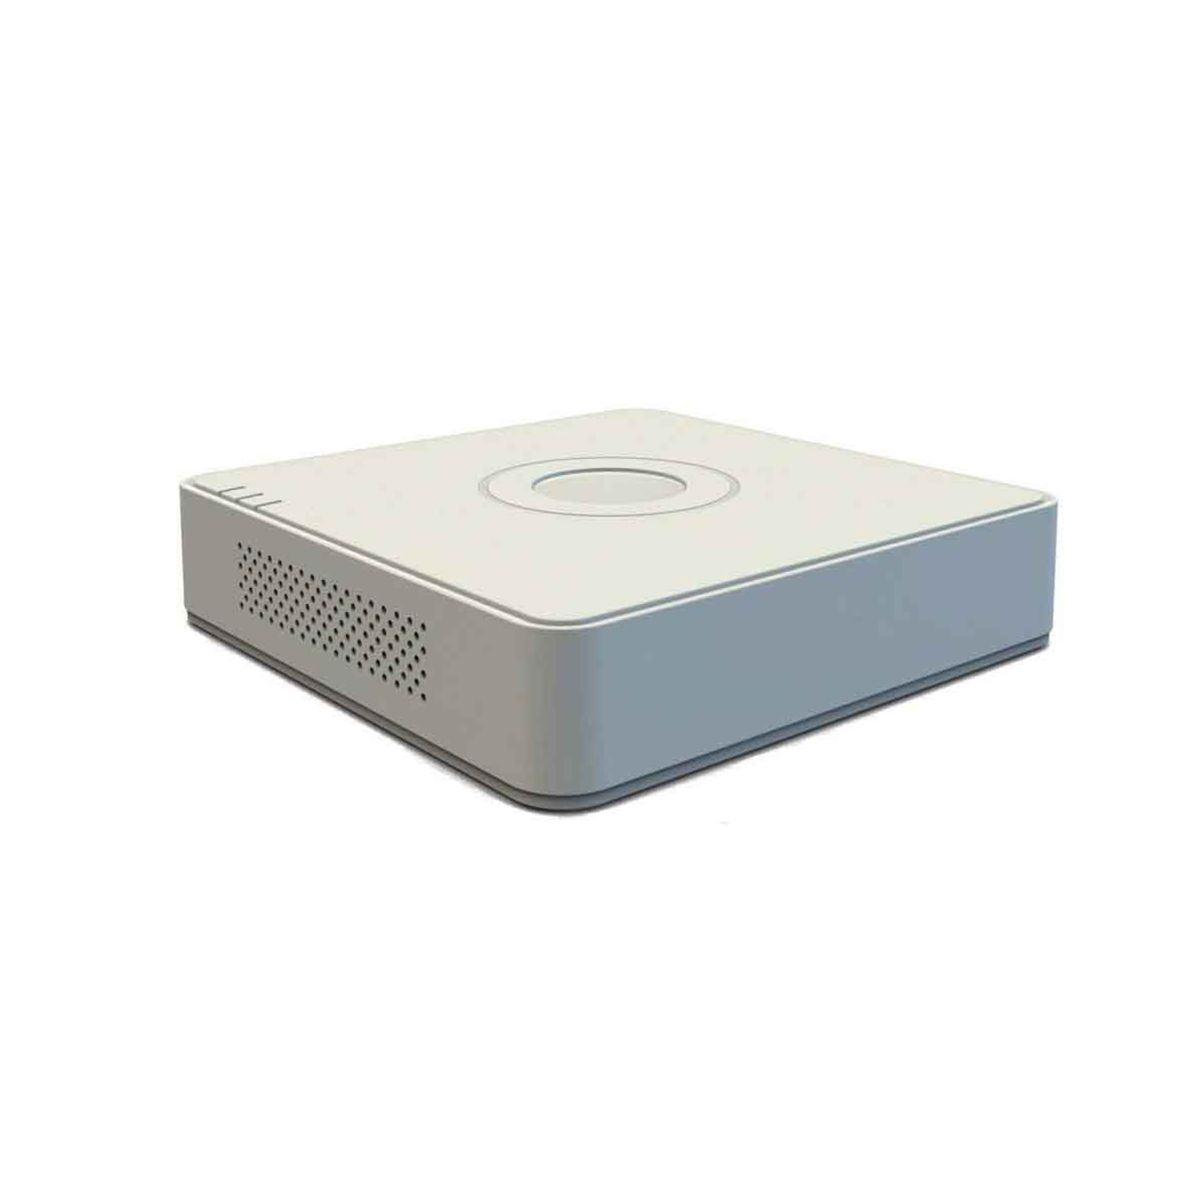 DVR Hikvision 4 canales  DS-7104HGHI-F1